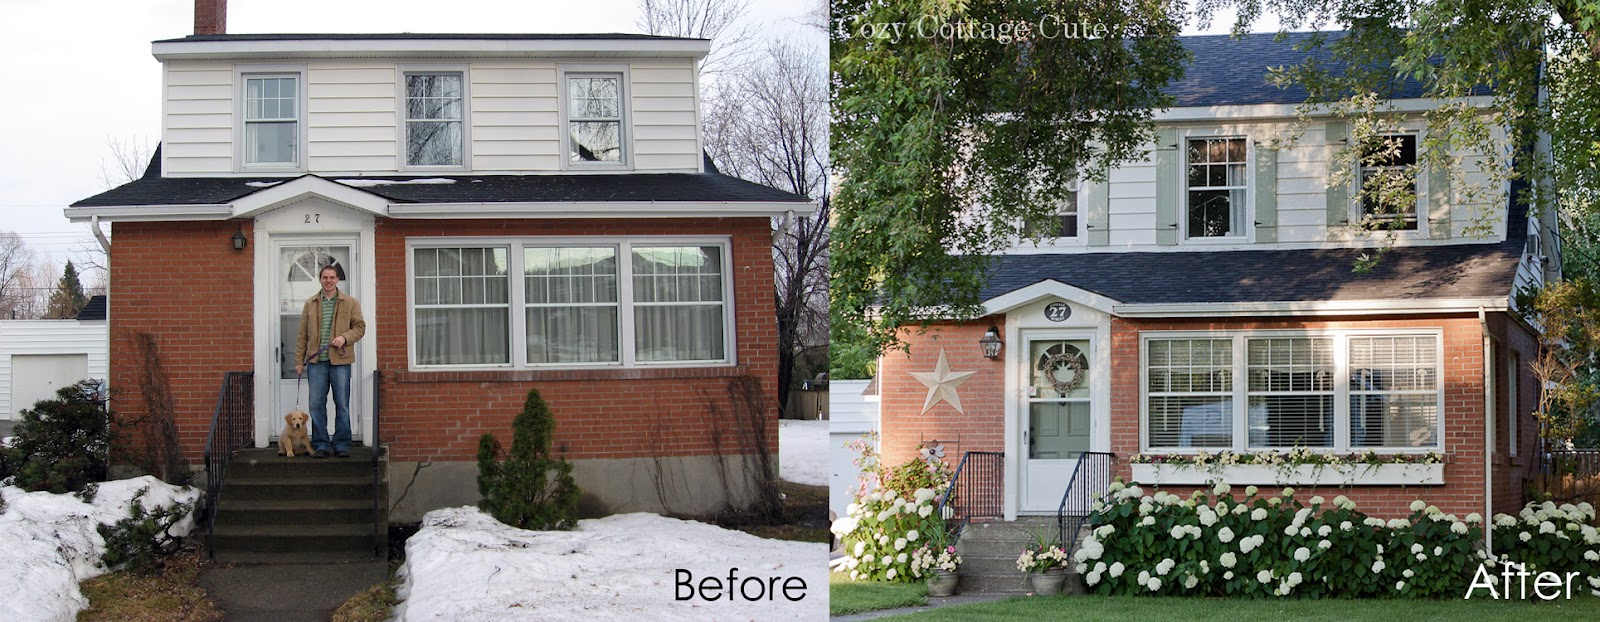 Home Tour Cozy Cottage Cute The Painted Home By Denise Sabia